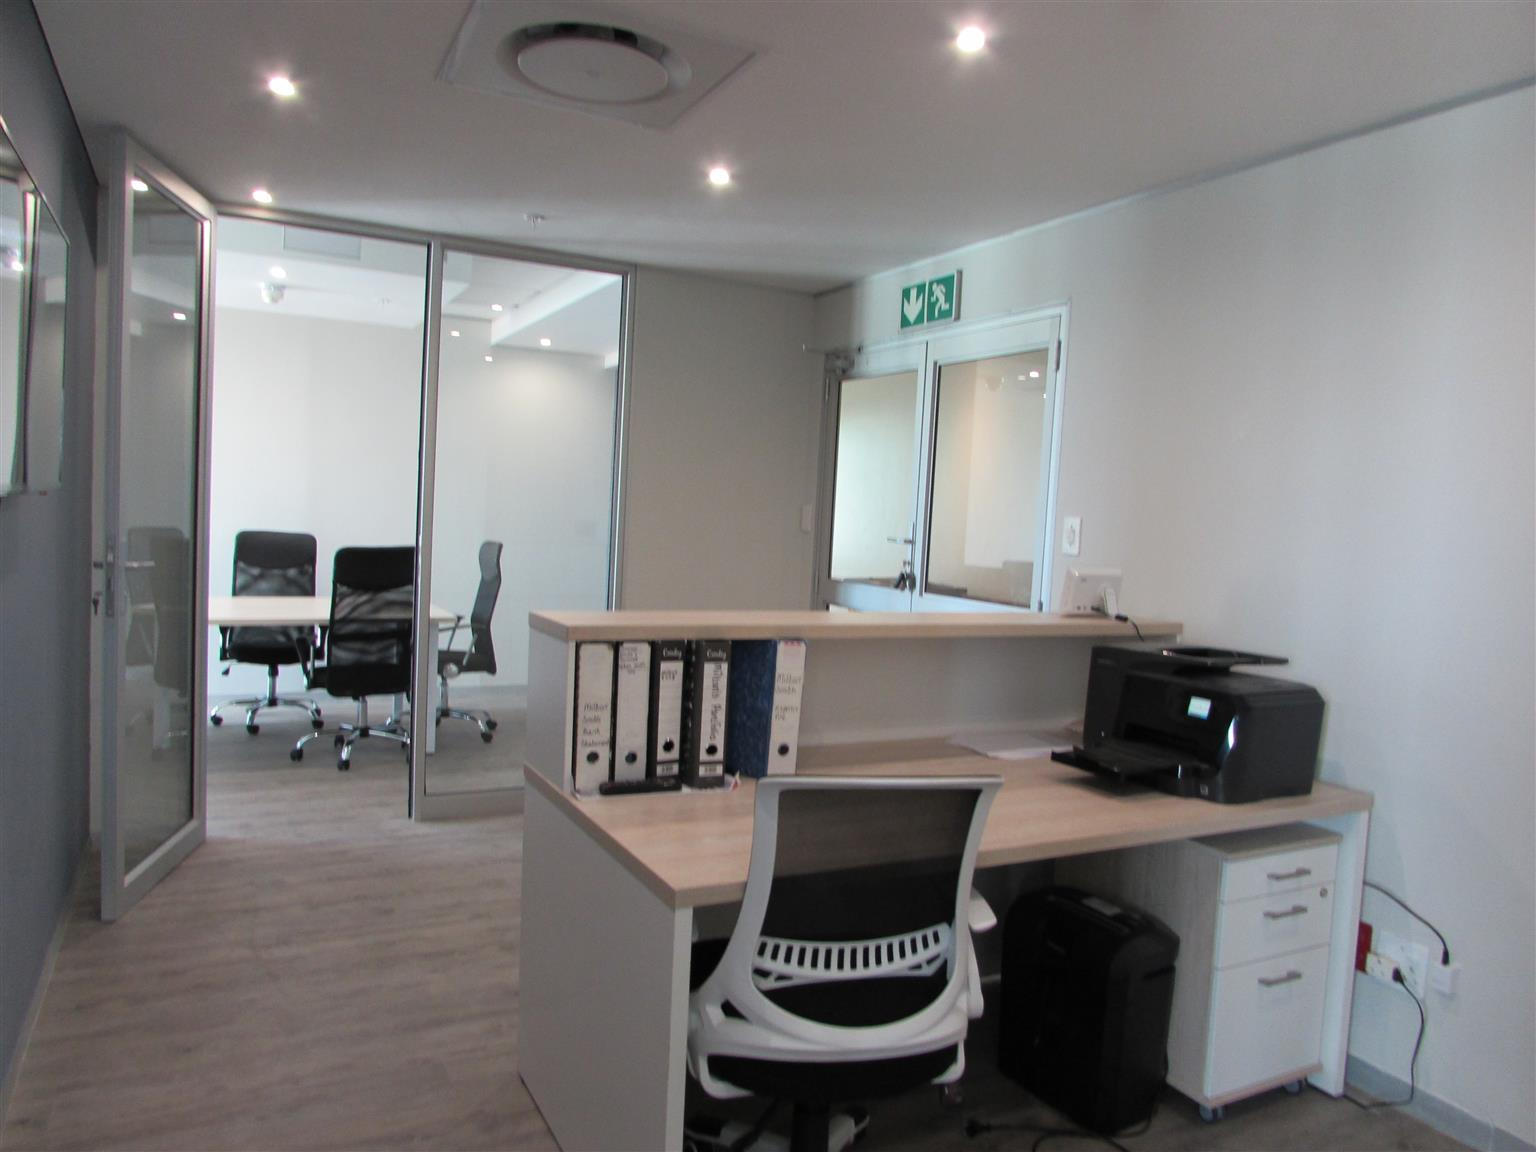 CENTURY CITY: 175m2 Office To Let Furnished/Unfurnished